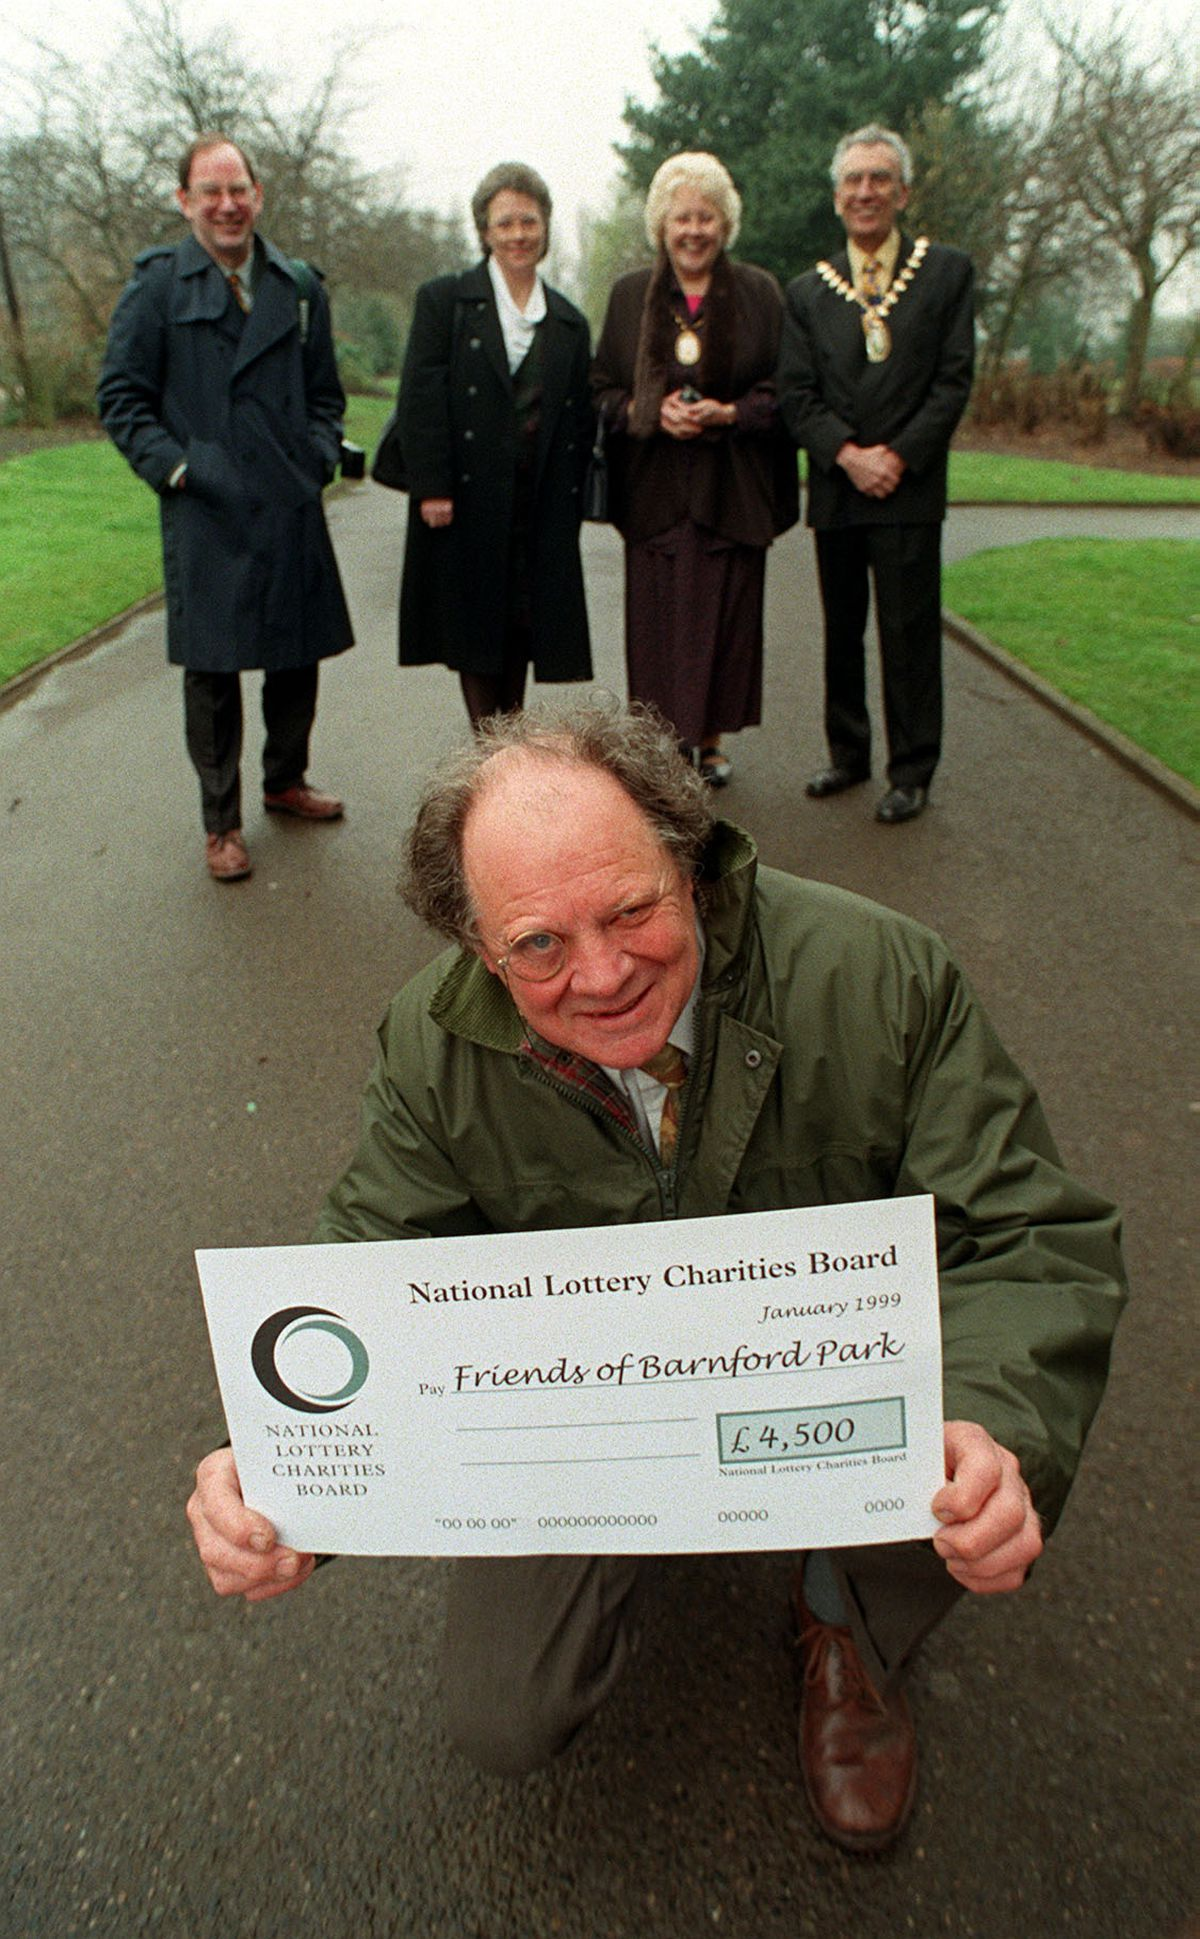 John Lloyd celebrates a lottery grant of £4,500 to refurbish Barnford Park, Oldbury